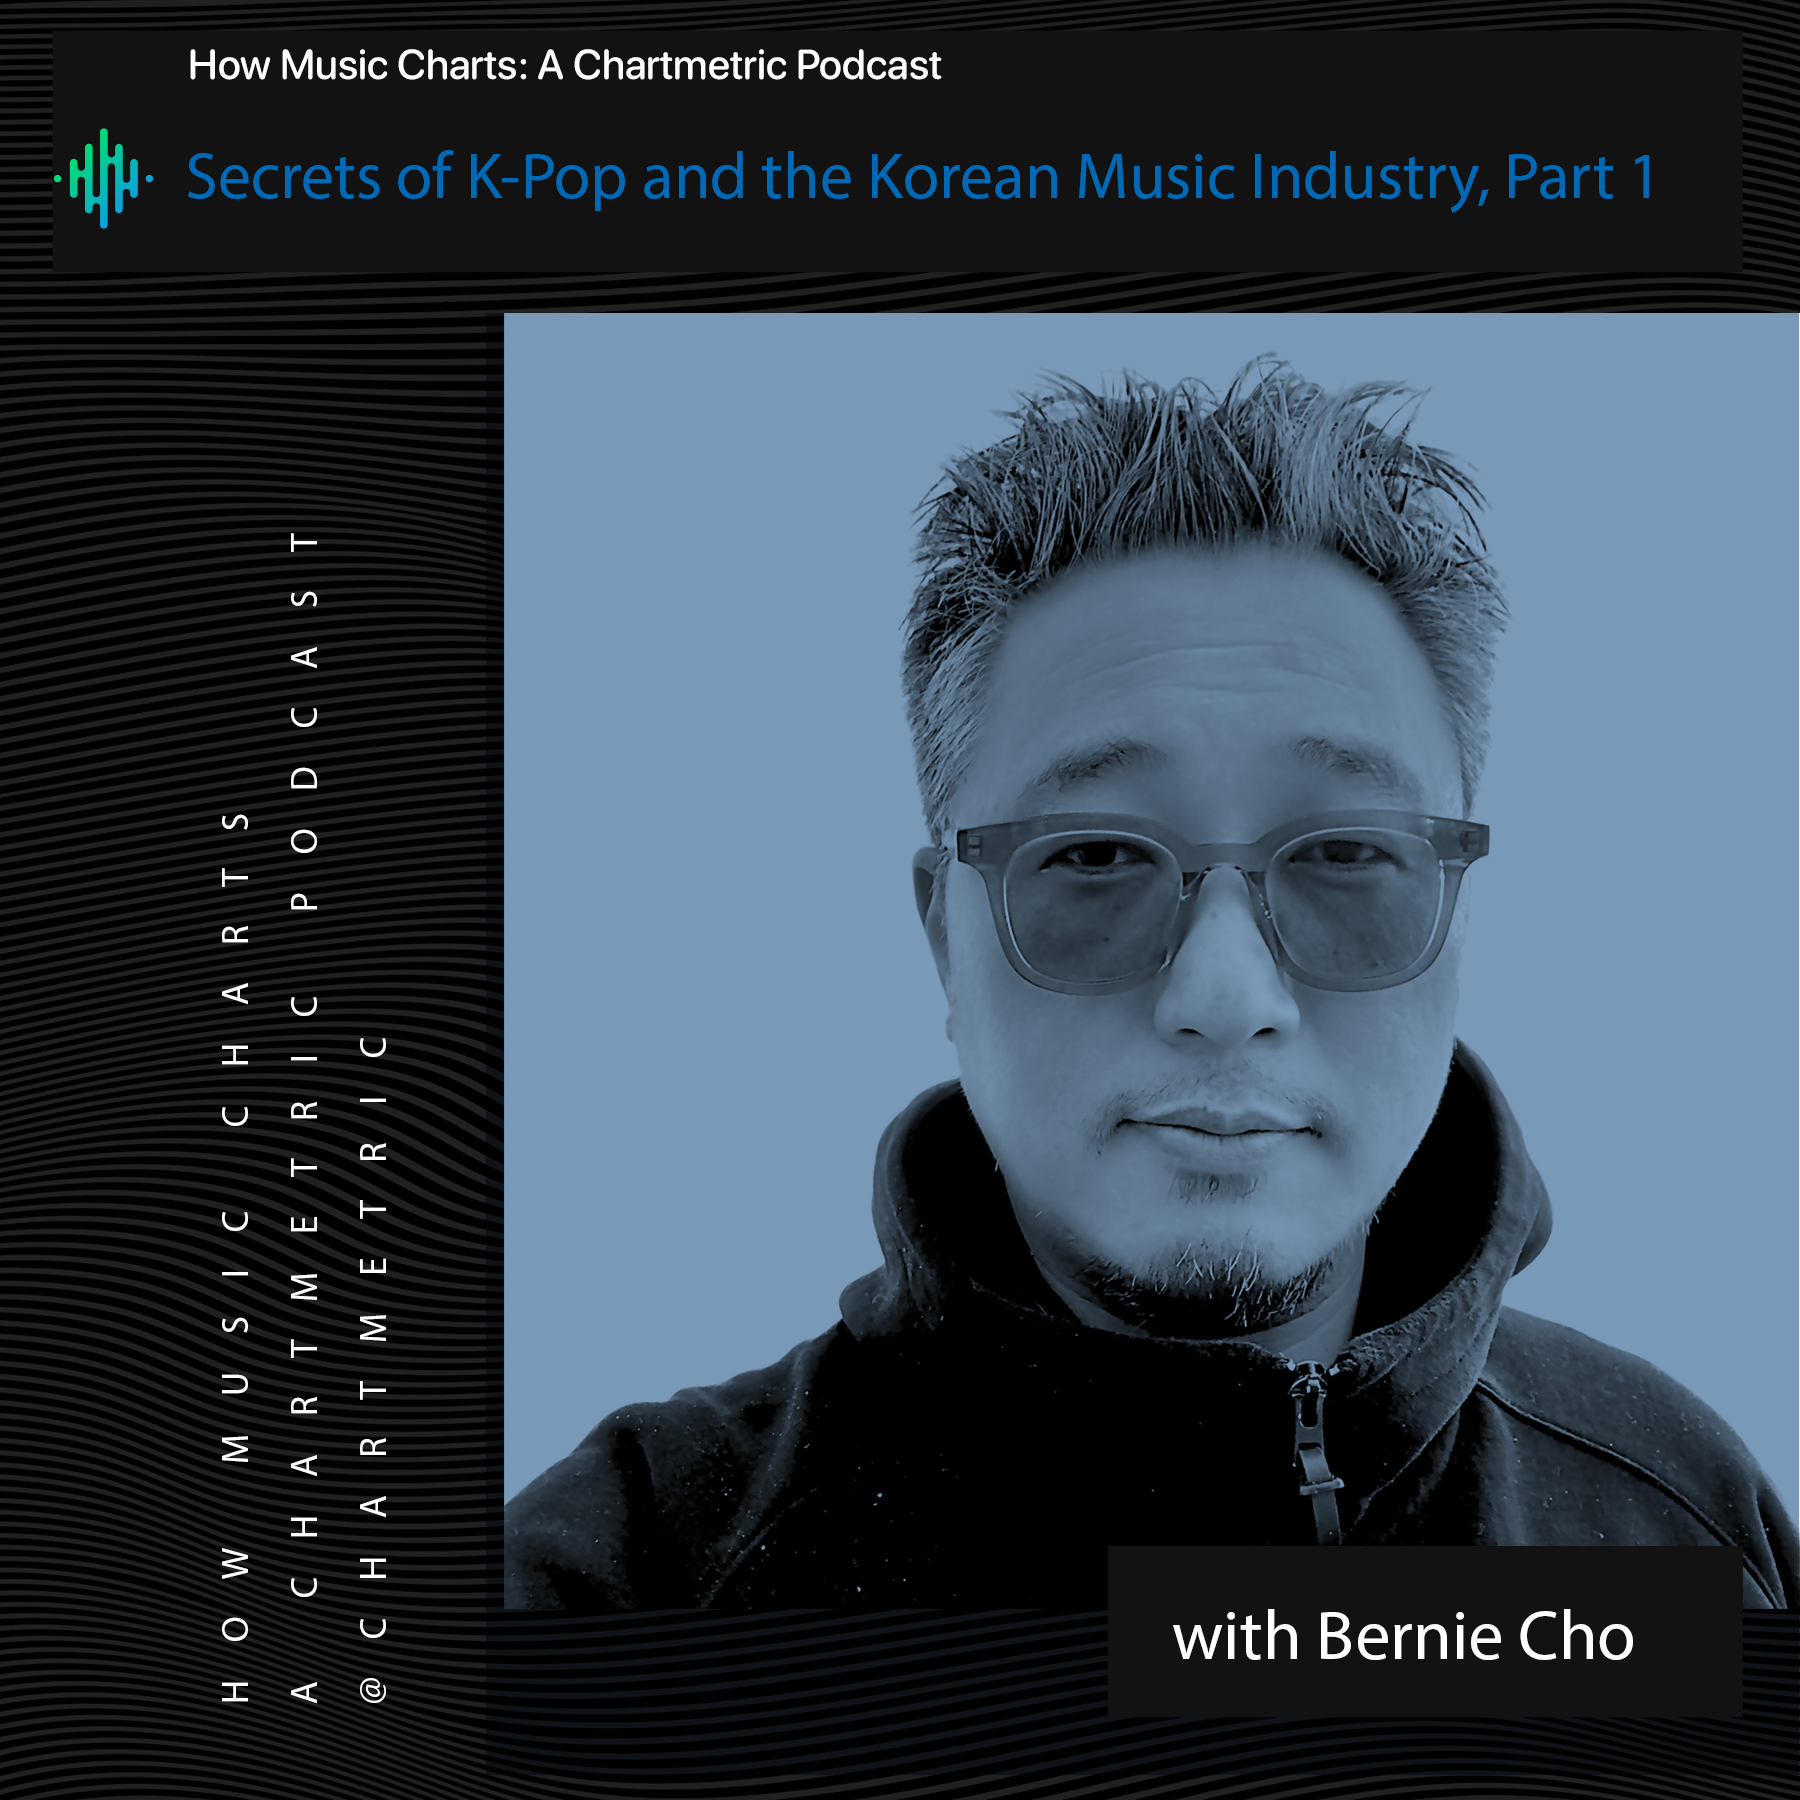 Secrets of K-Pop and the Korean Music Industry With Bernie Cho, Part 1